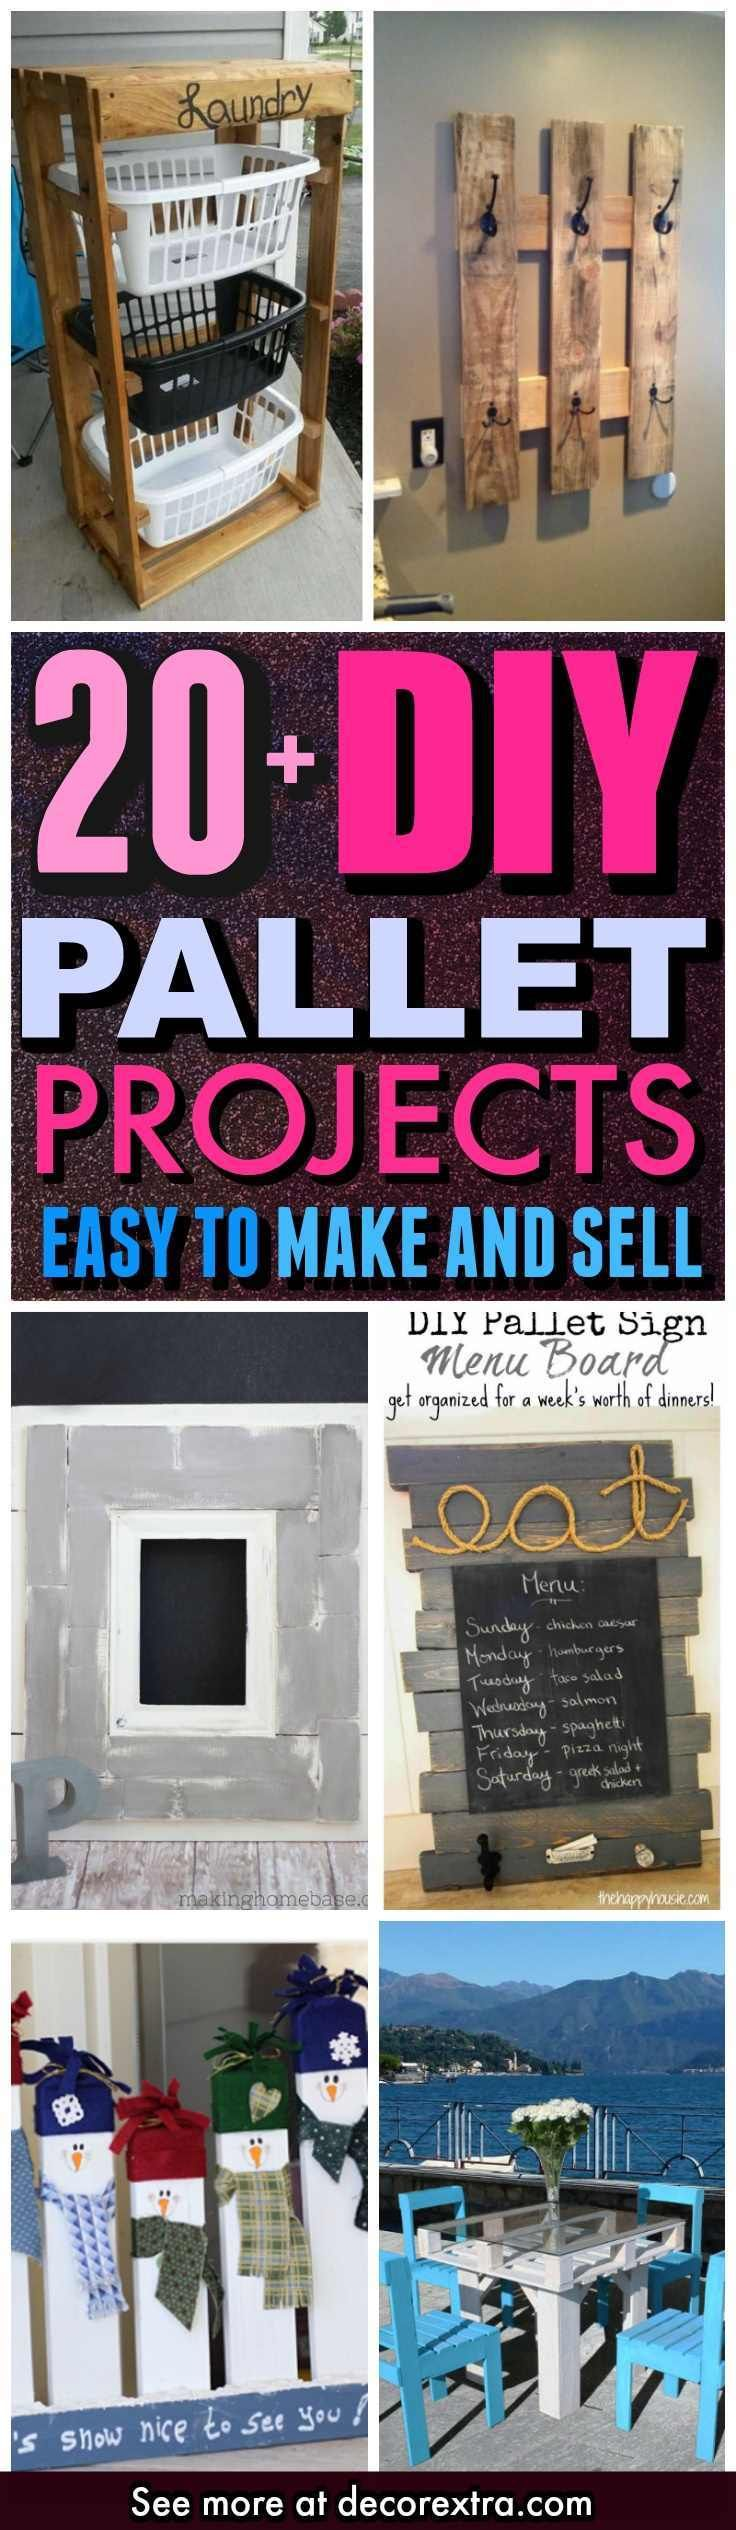 20+ DIY Pallet Projects That Are Easy to Make and Sell ...